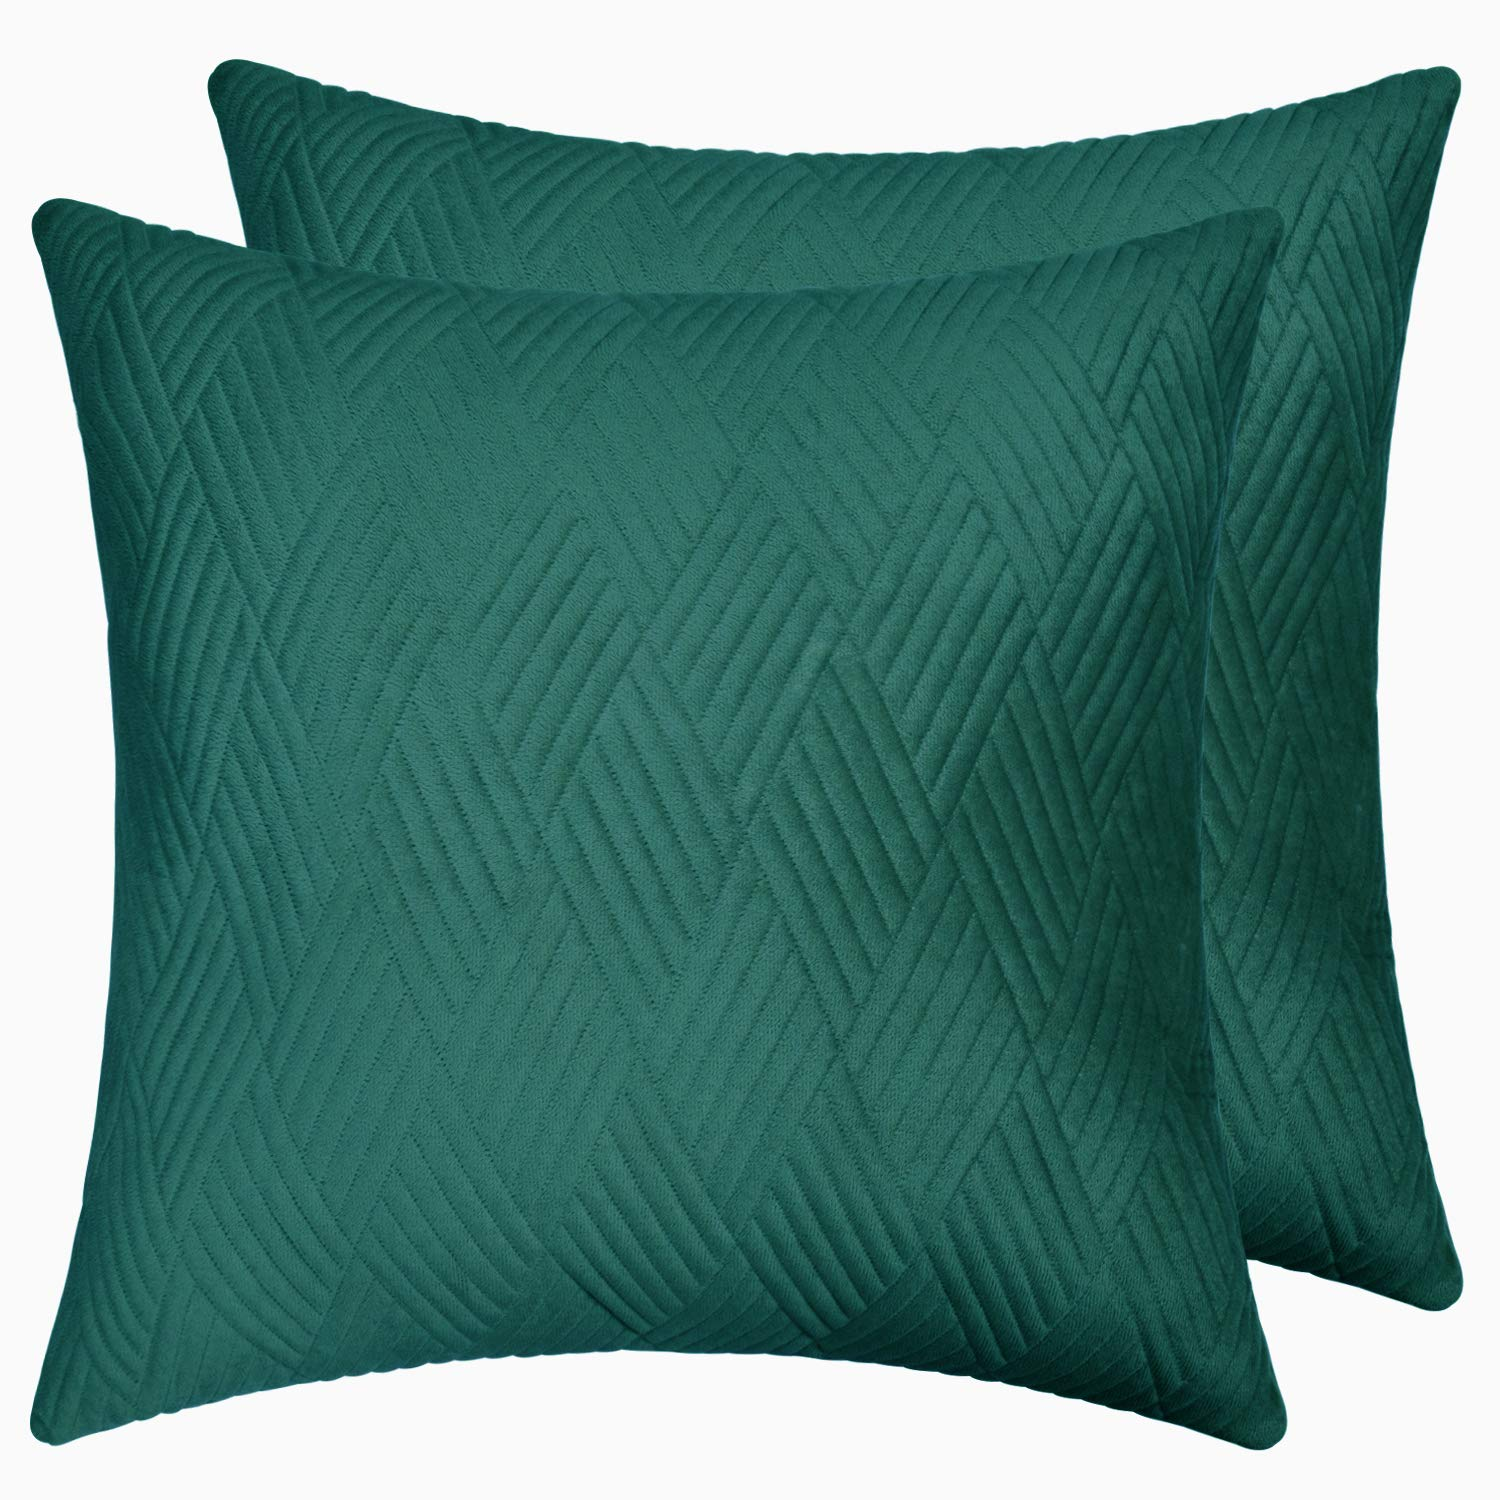 ISSUNTEX Velvet Quilted Pillow Cover Rectangle Square Striped Soft Cozy Throw Pillow Covers Set for Sofa Couch Living Room Bedroom Office Car(Pack of 2, 18x18 in, Dark Green)